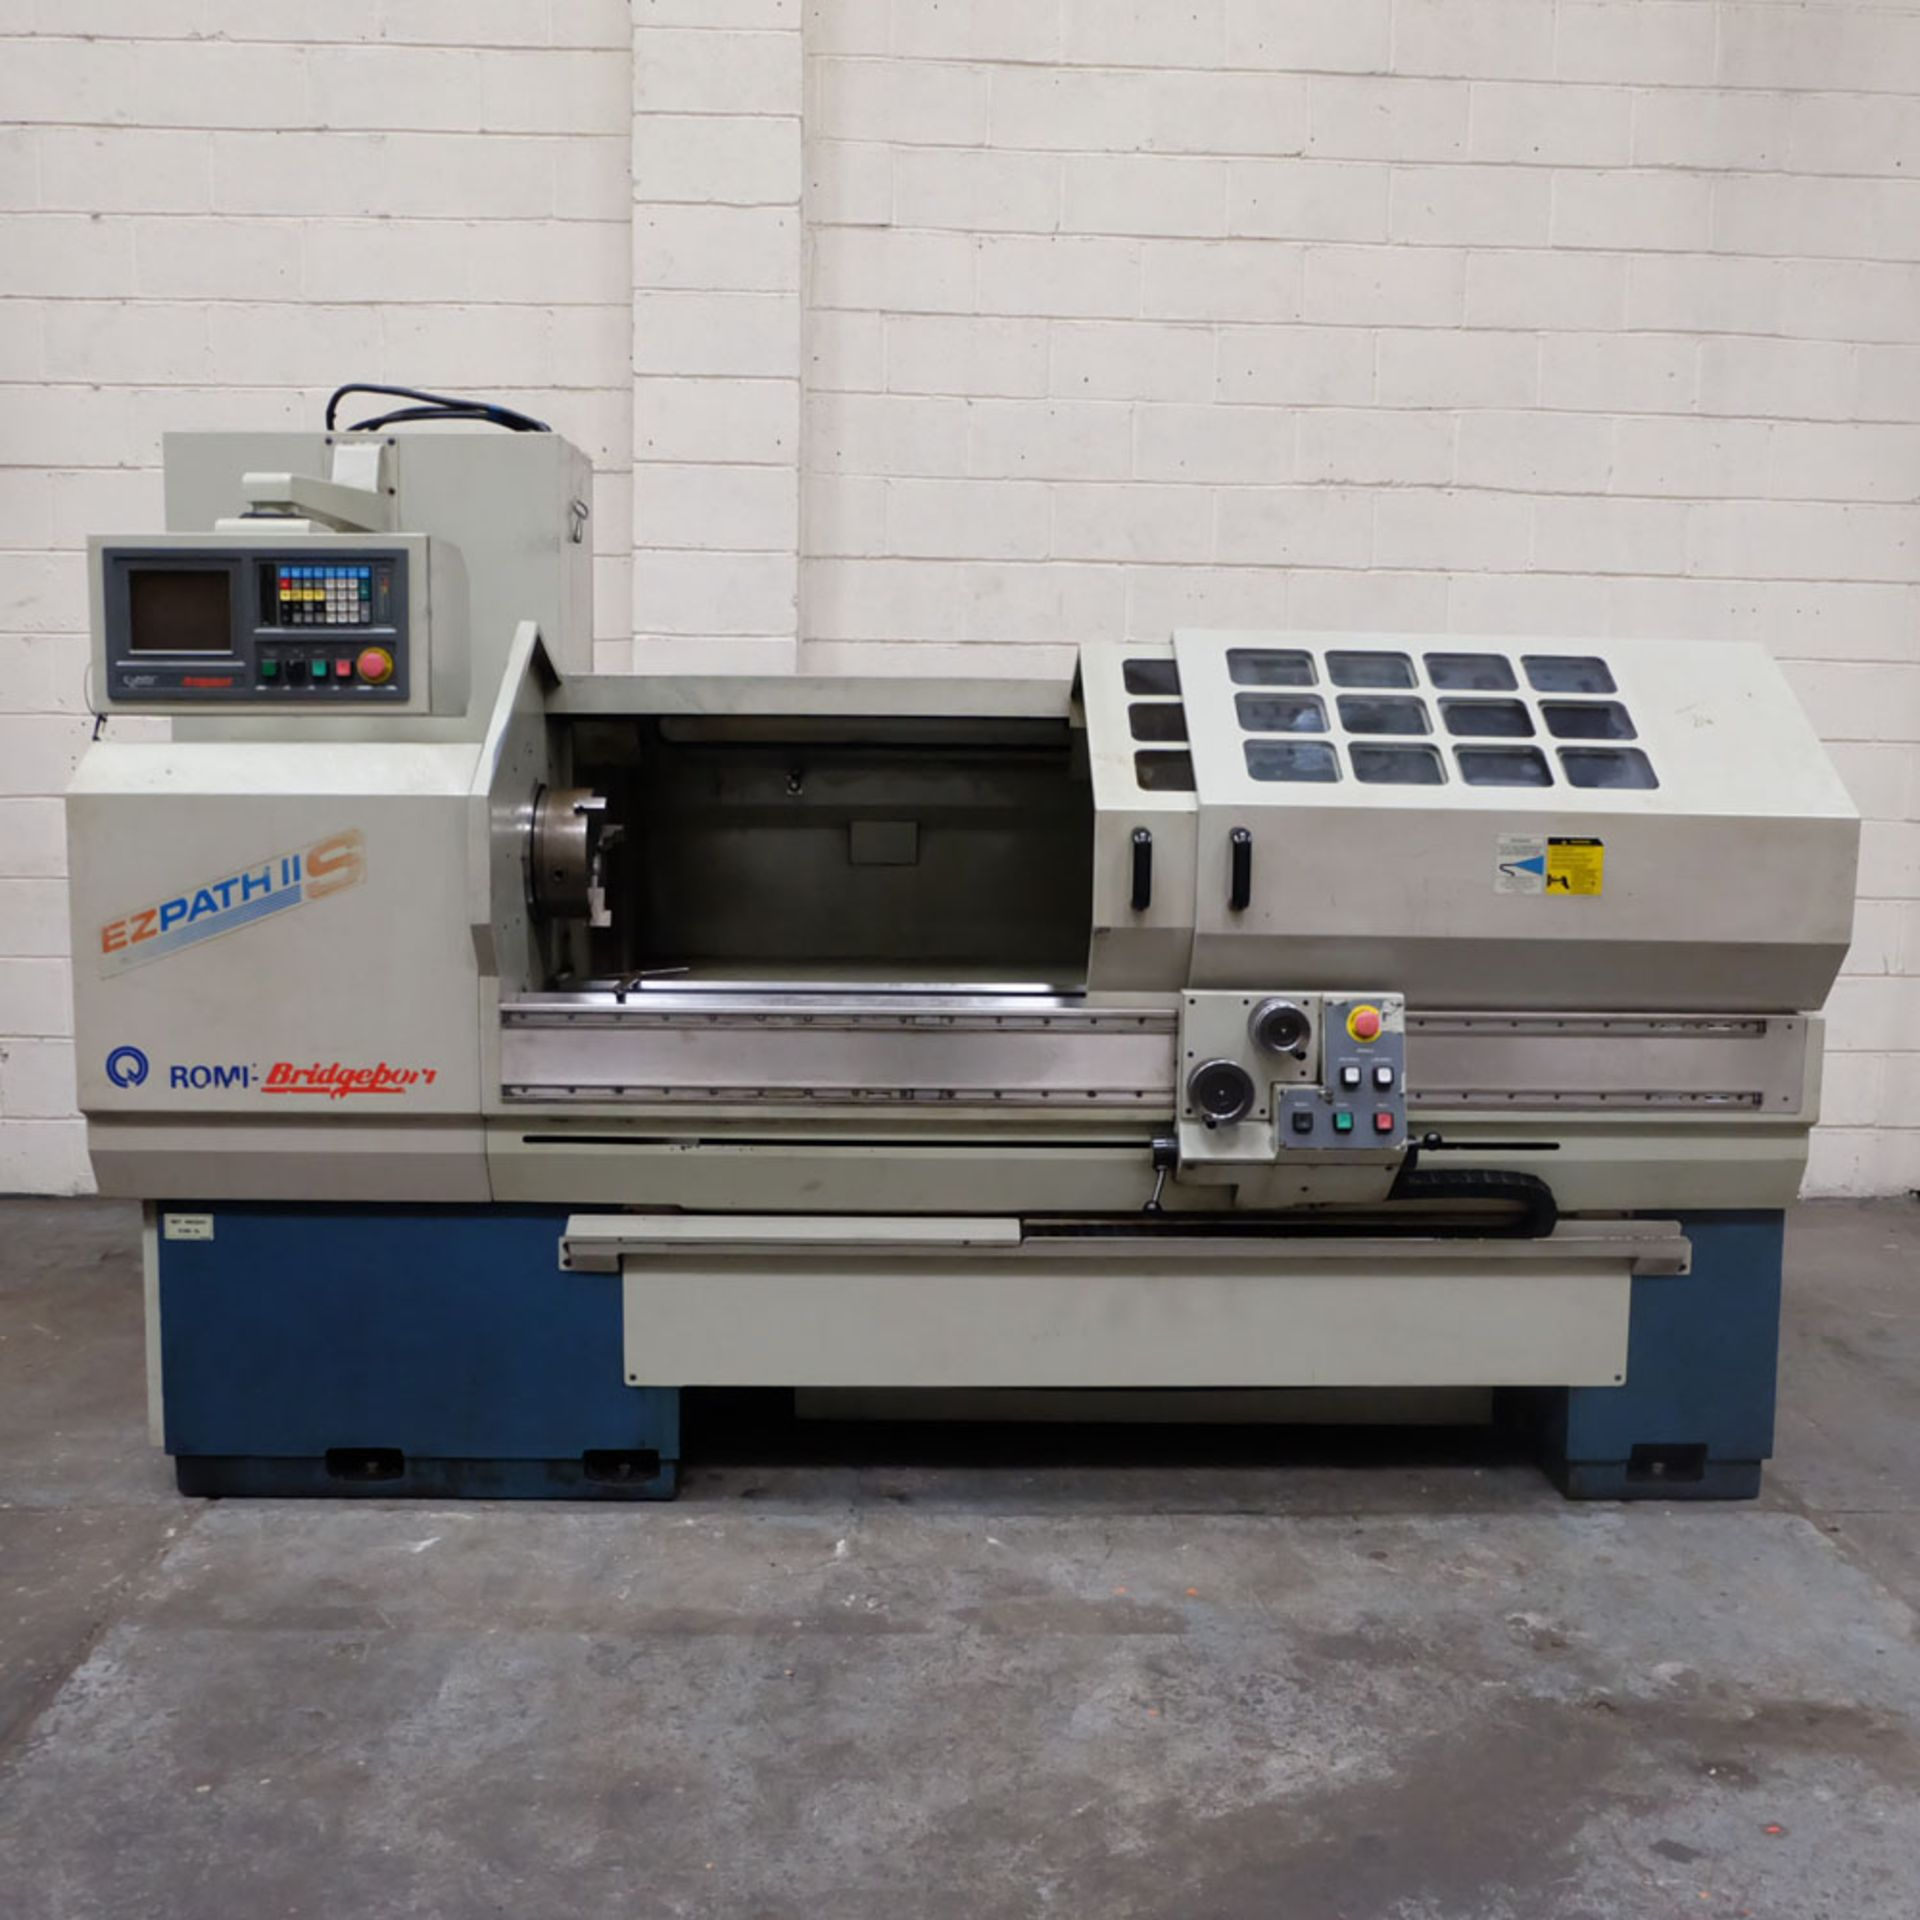 "Bridgeport Romi EZ Path IIS V3 CNC Centre Lathe. DX32R 2 Axis Control. Swing Over Bed: 20""."